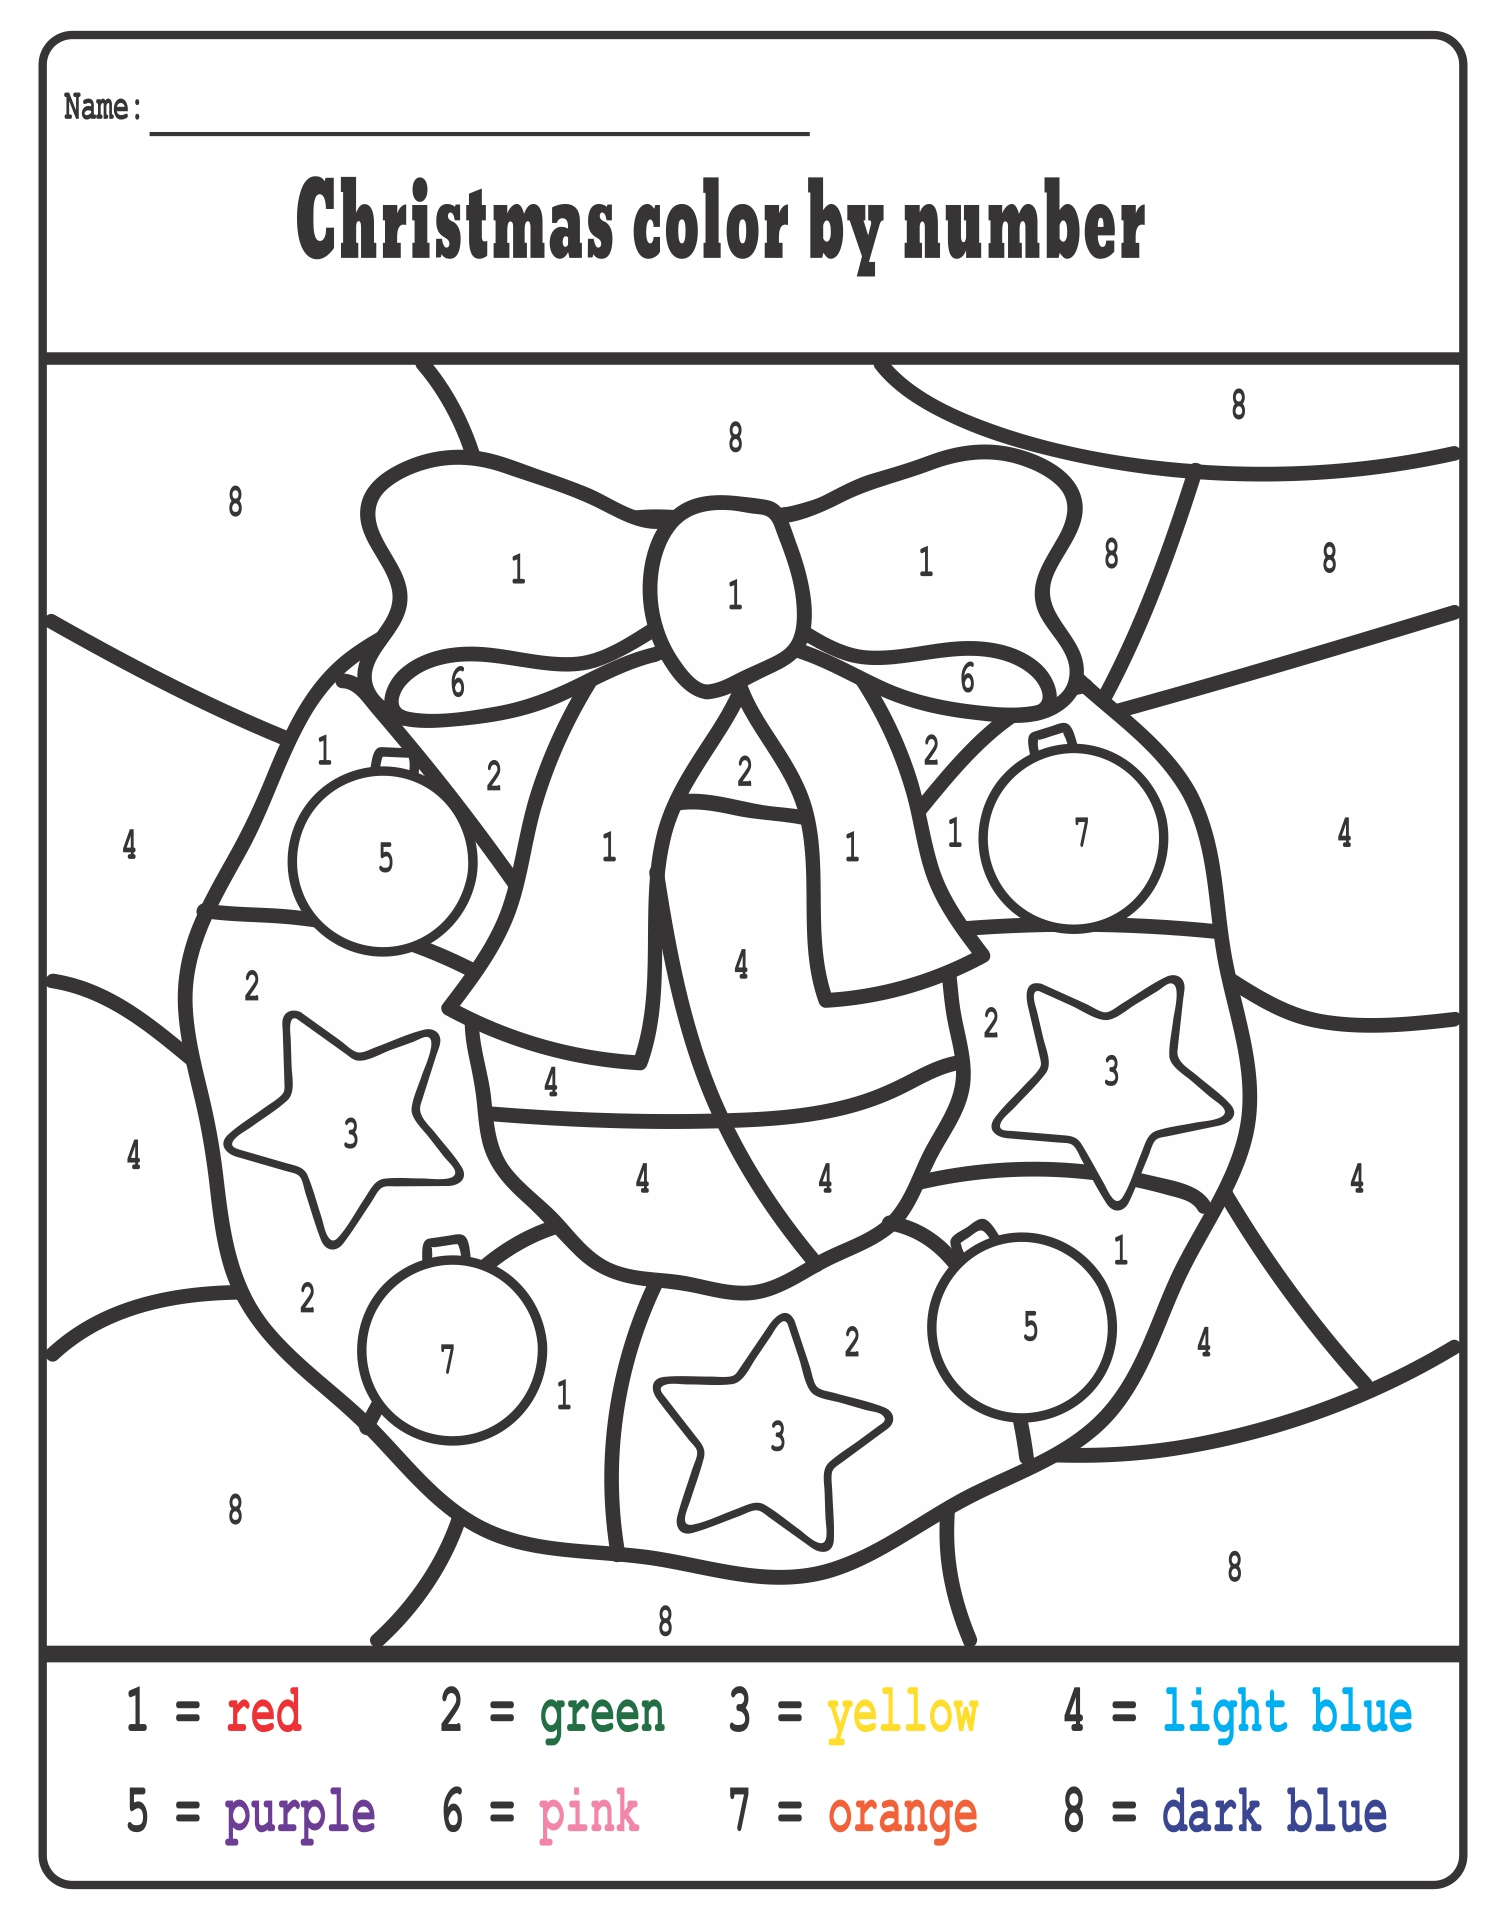 Number Names Worksheets free christmas work sheets : Number Names Worksheets : preschool christmas worksheets free ...